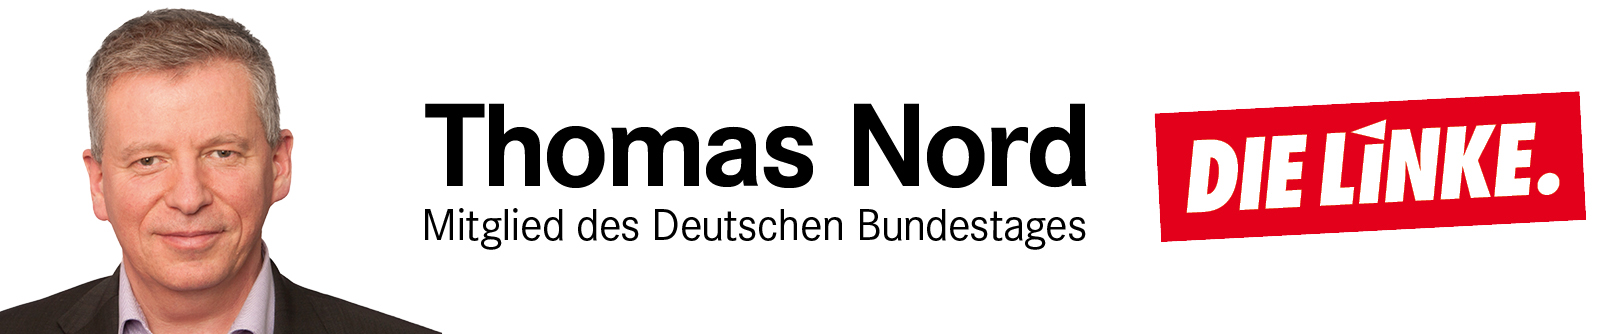 Thomas Nord (MdB/DIE LINKE)